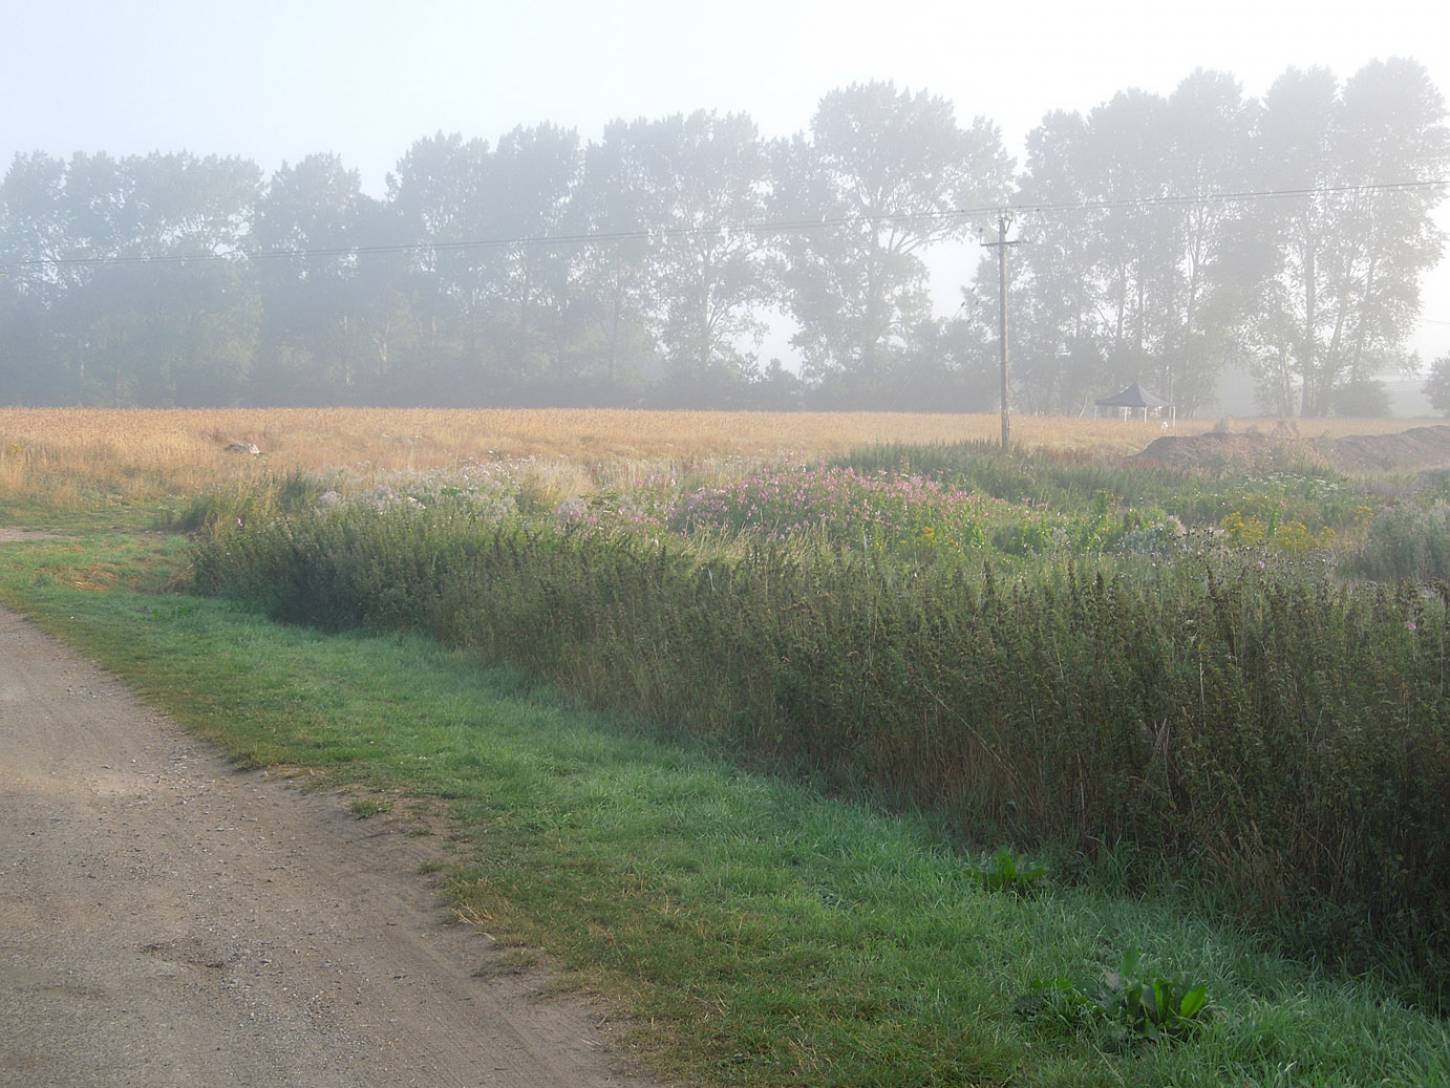 WoWo manual harvest - morning day #3 - 7:17am&nbsp;8<sup>th</sup>&nbsp;Aug.&nbsp;'15